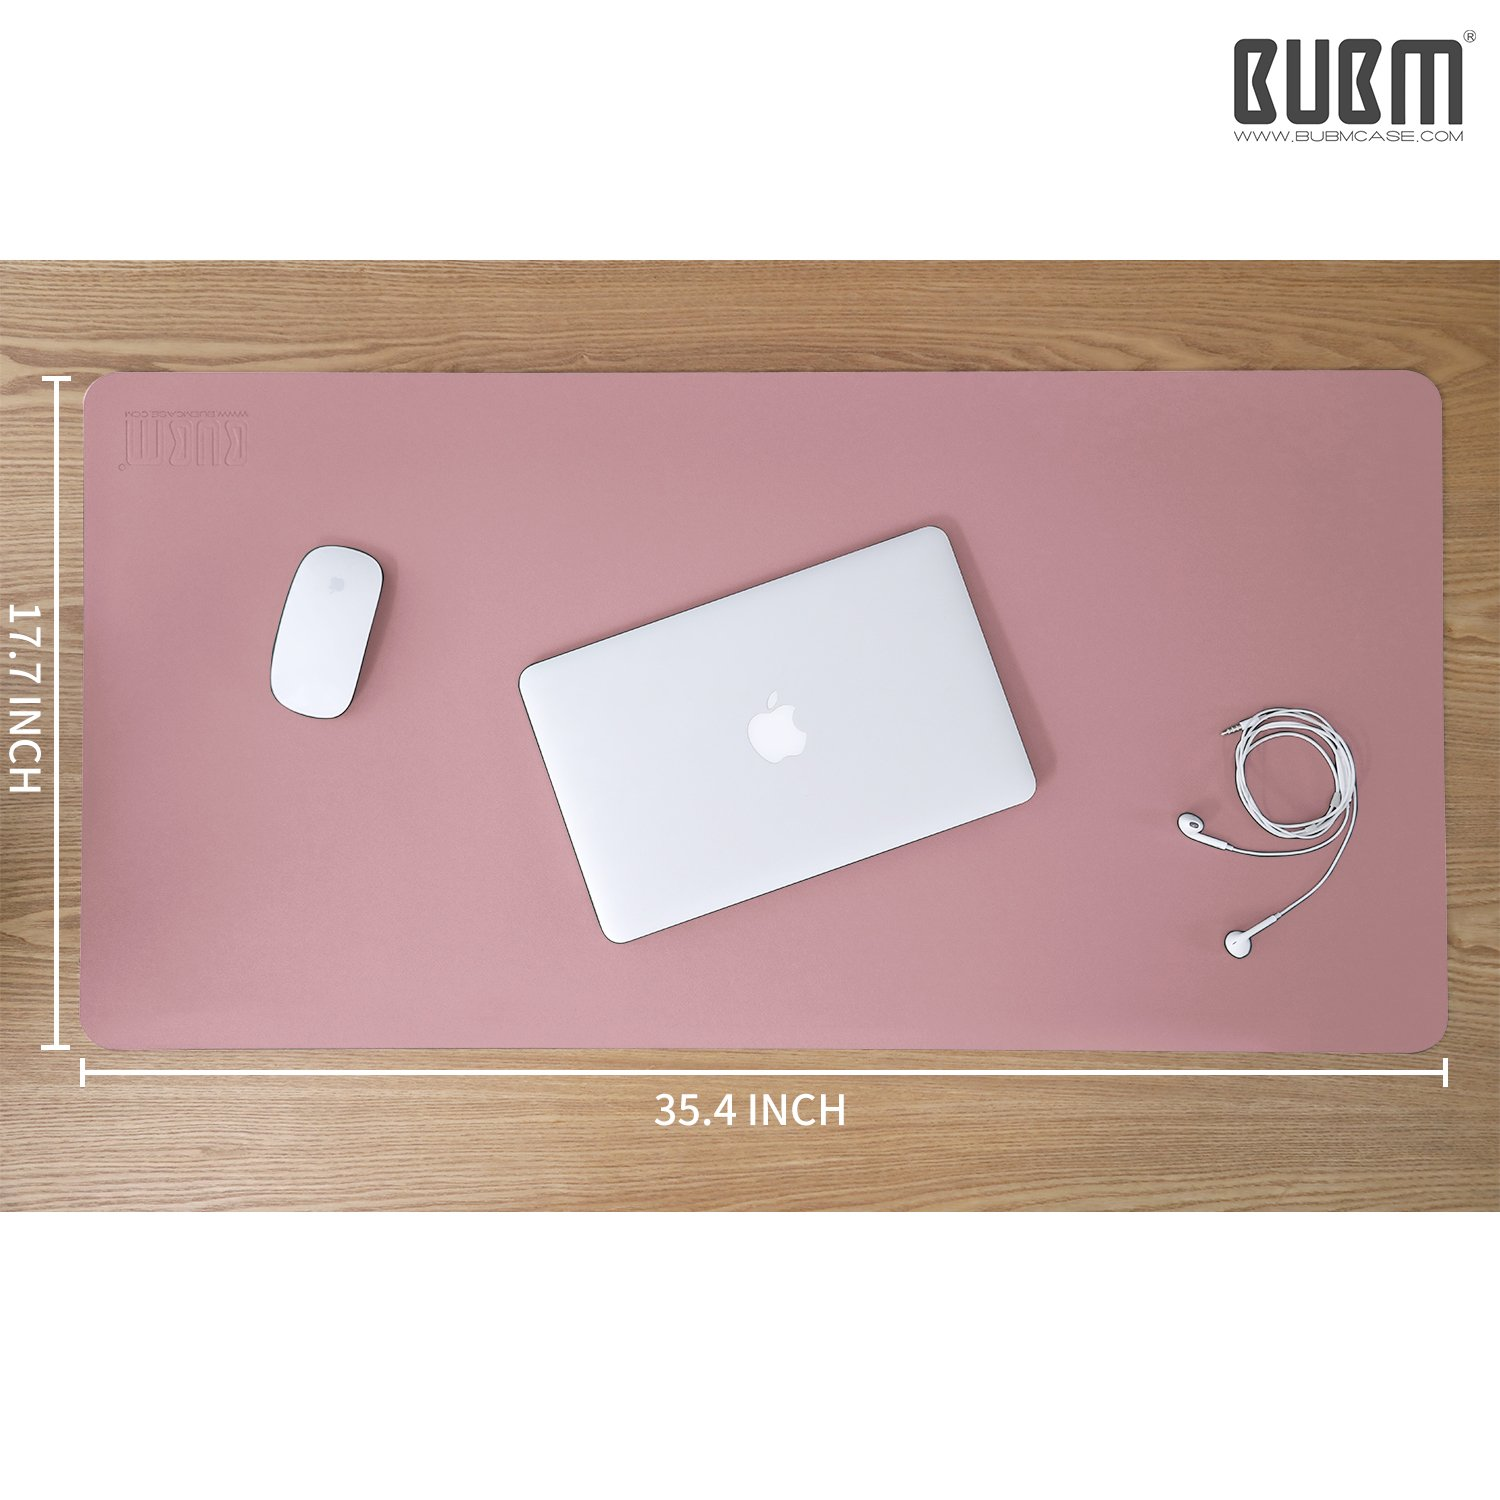 Desk Pad Mouse Pad/Mat - BUBM Large Gaming Mouse Pad Desktop Pad Protector PU Leather Laptop pad for Office and Home,Waterproof and Smooth,2 Year Warranty(35.4'' 17.7'', Pink+Silver) by BUBM (Image #4)